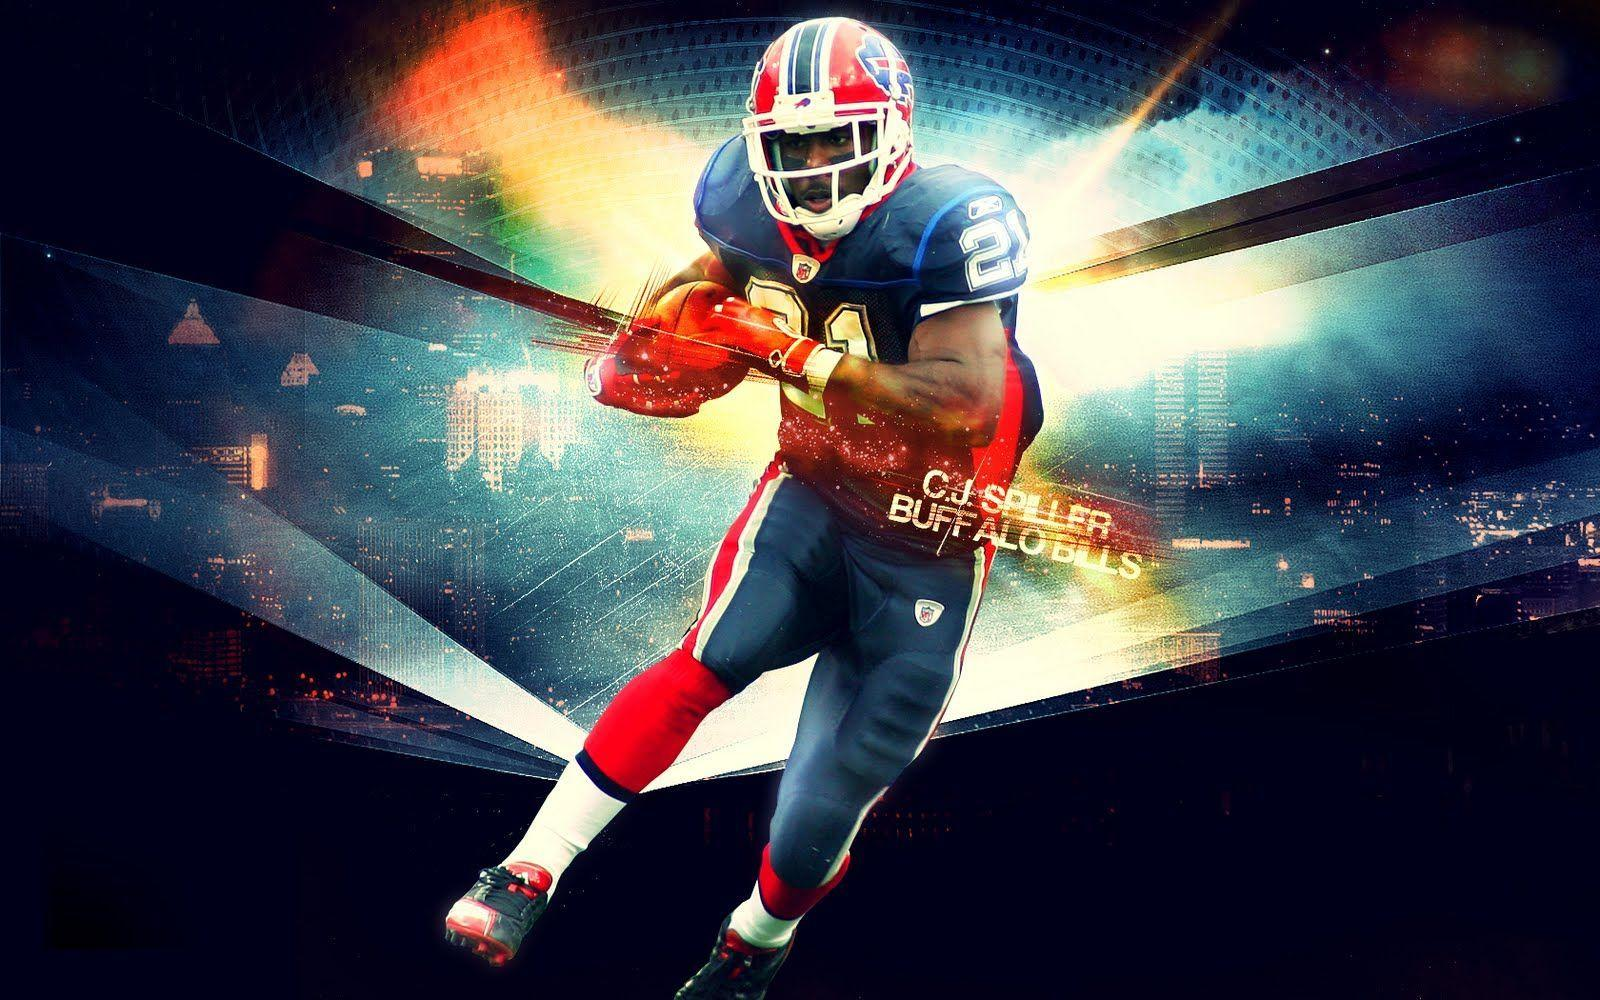 nfl wallpaper 31 wallpaper background hd - | Images And Wallpapers ...